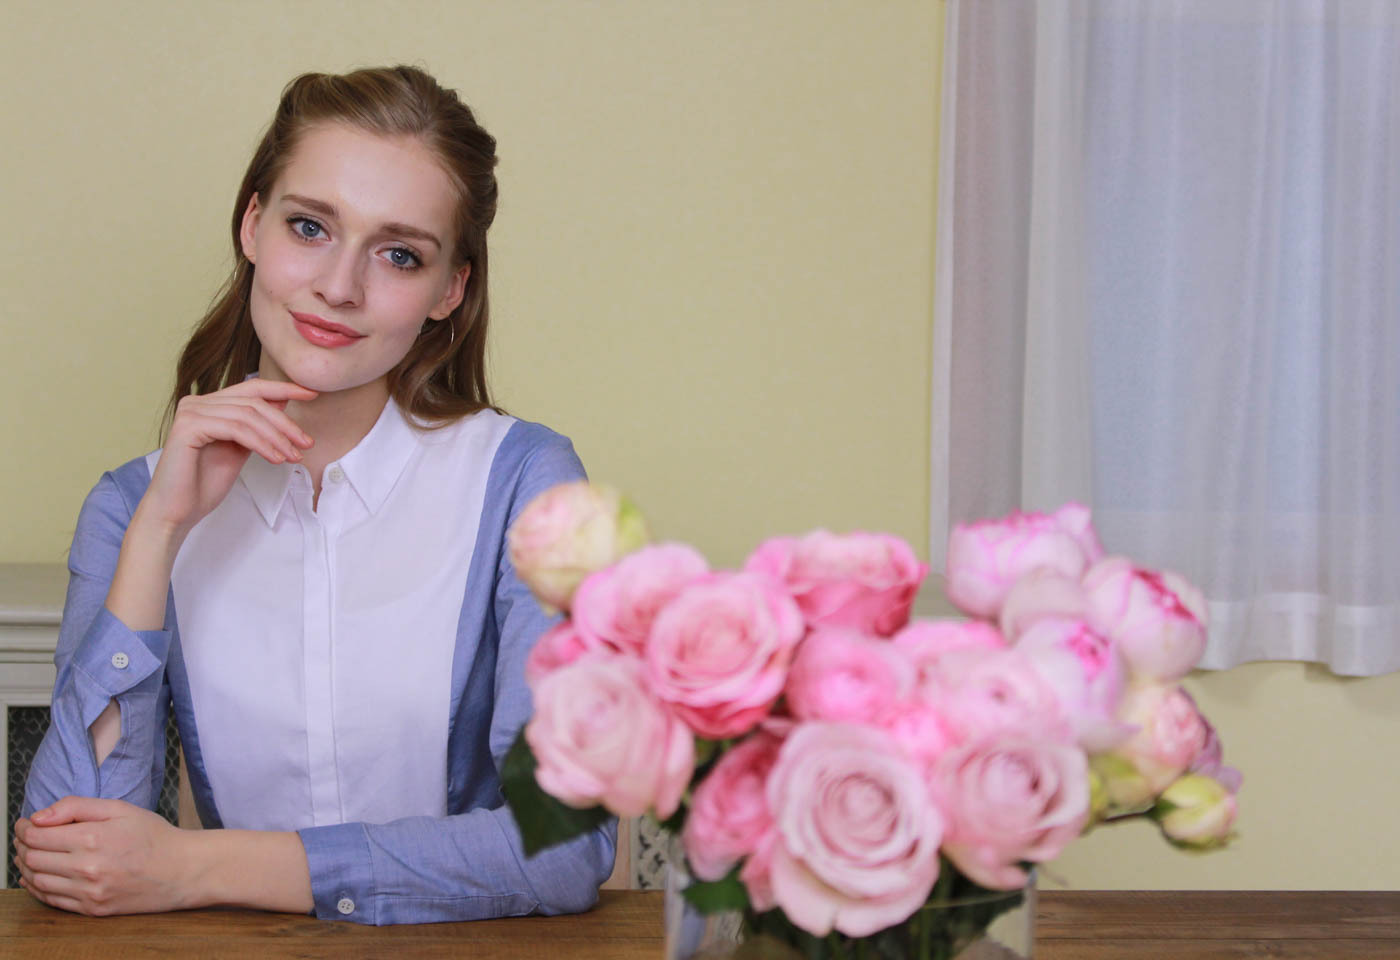 Girl with roses taken with Canon EOS 1300D DSLR camera